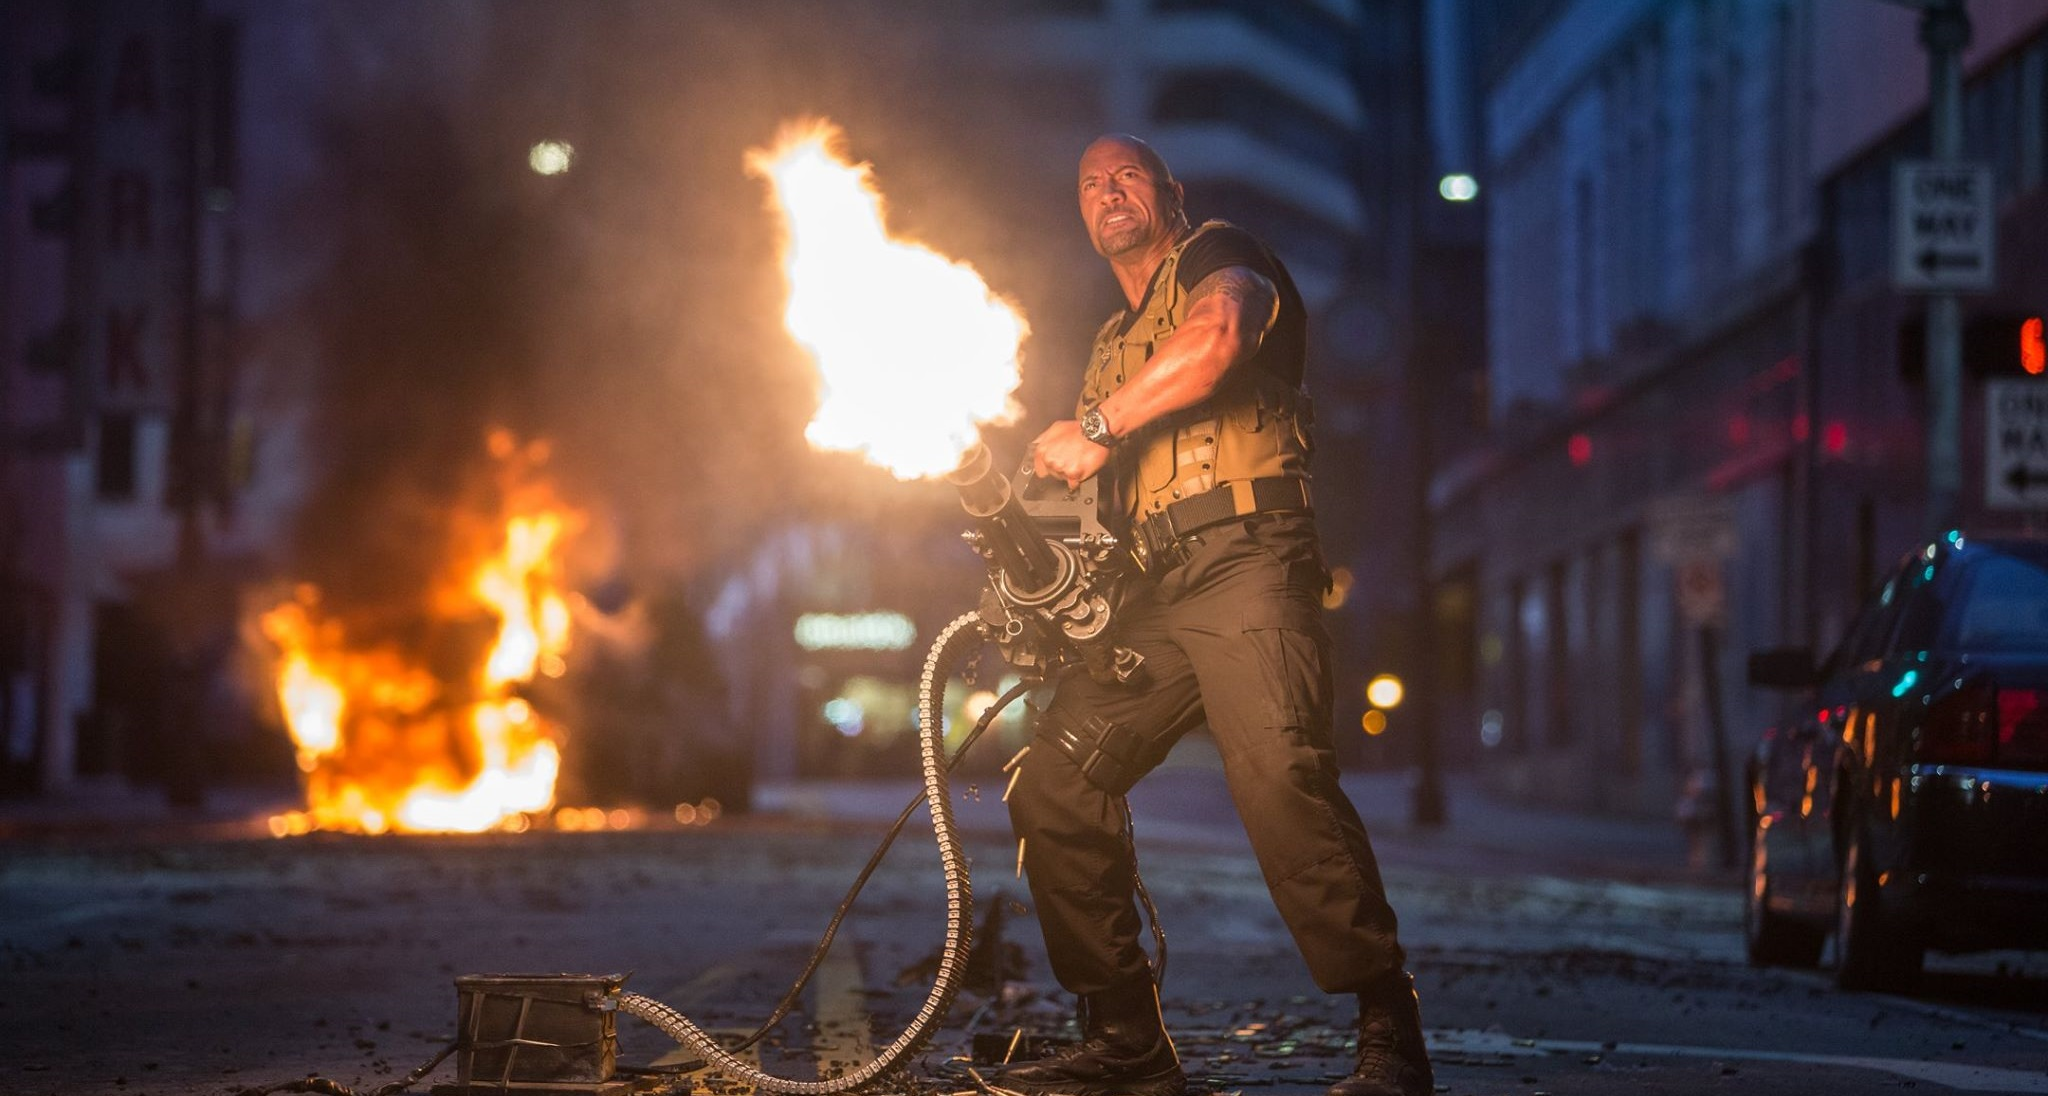 Dwayne Johnson Calls Out Male Co-Star of 'Fast 8'